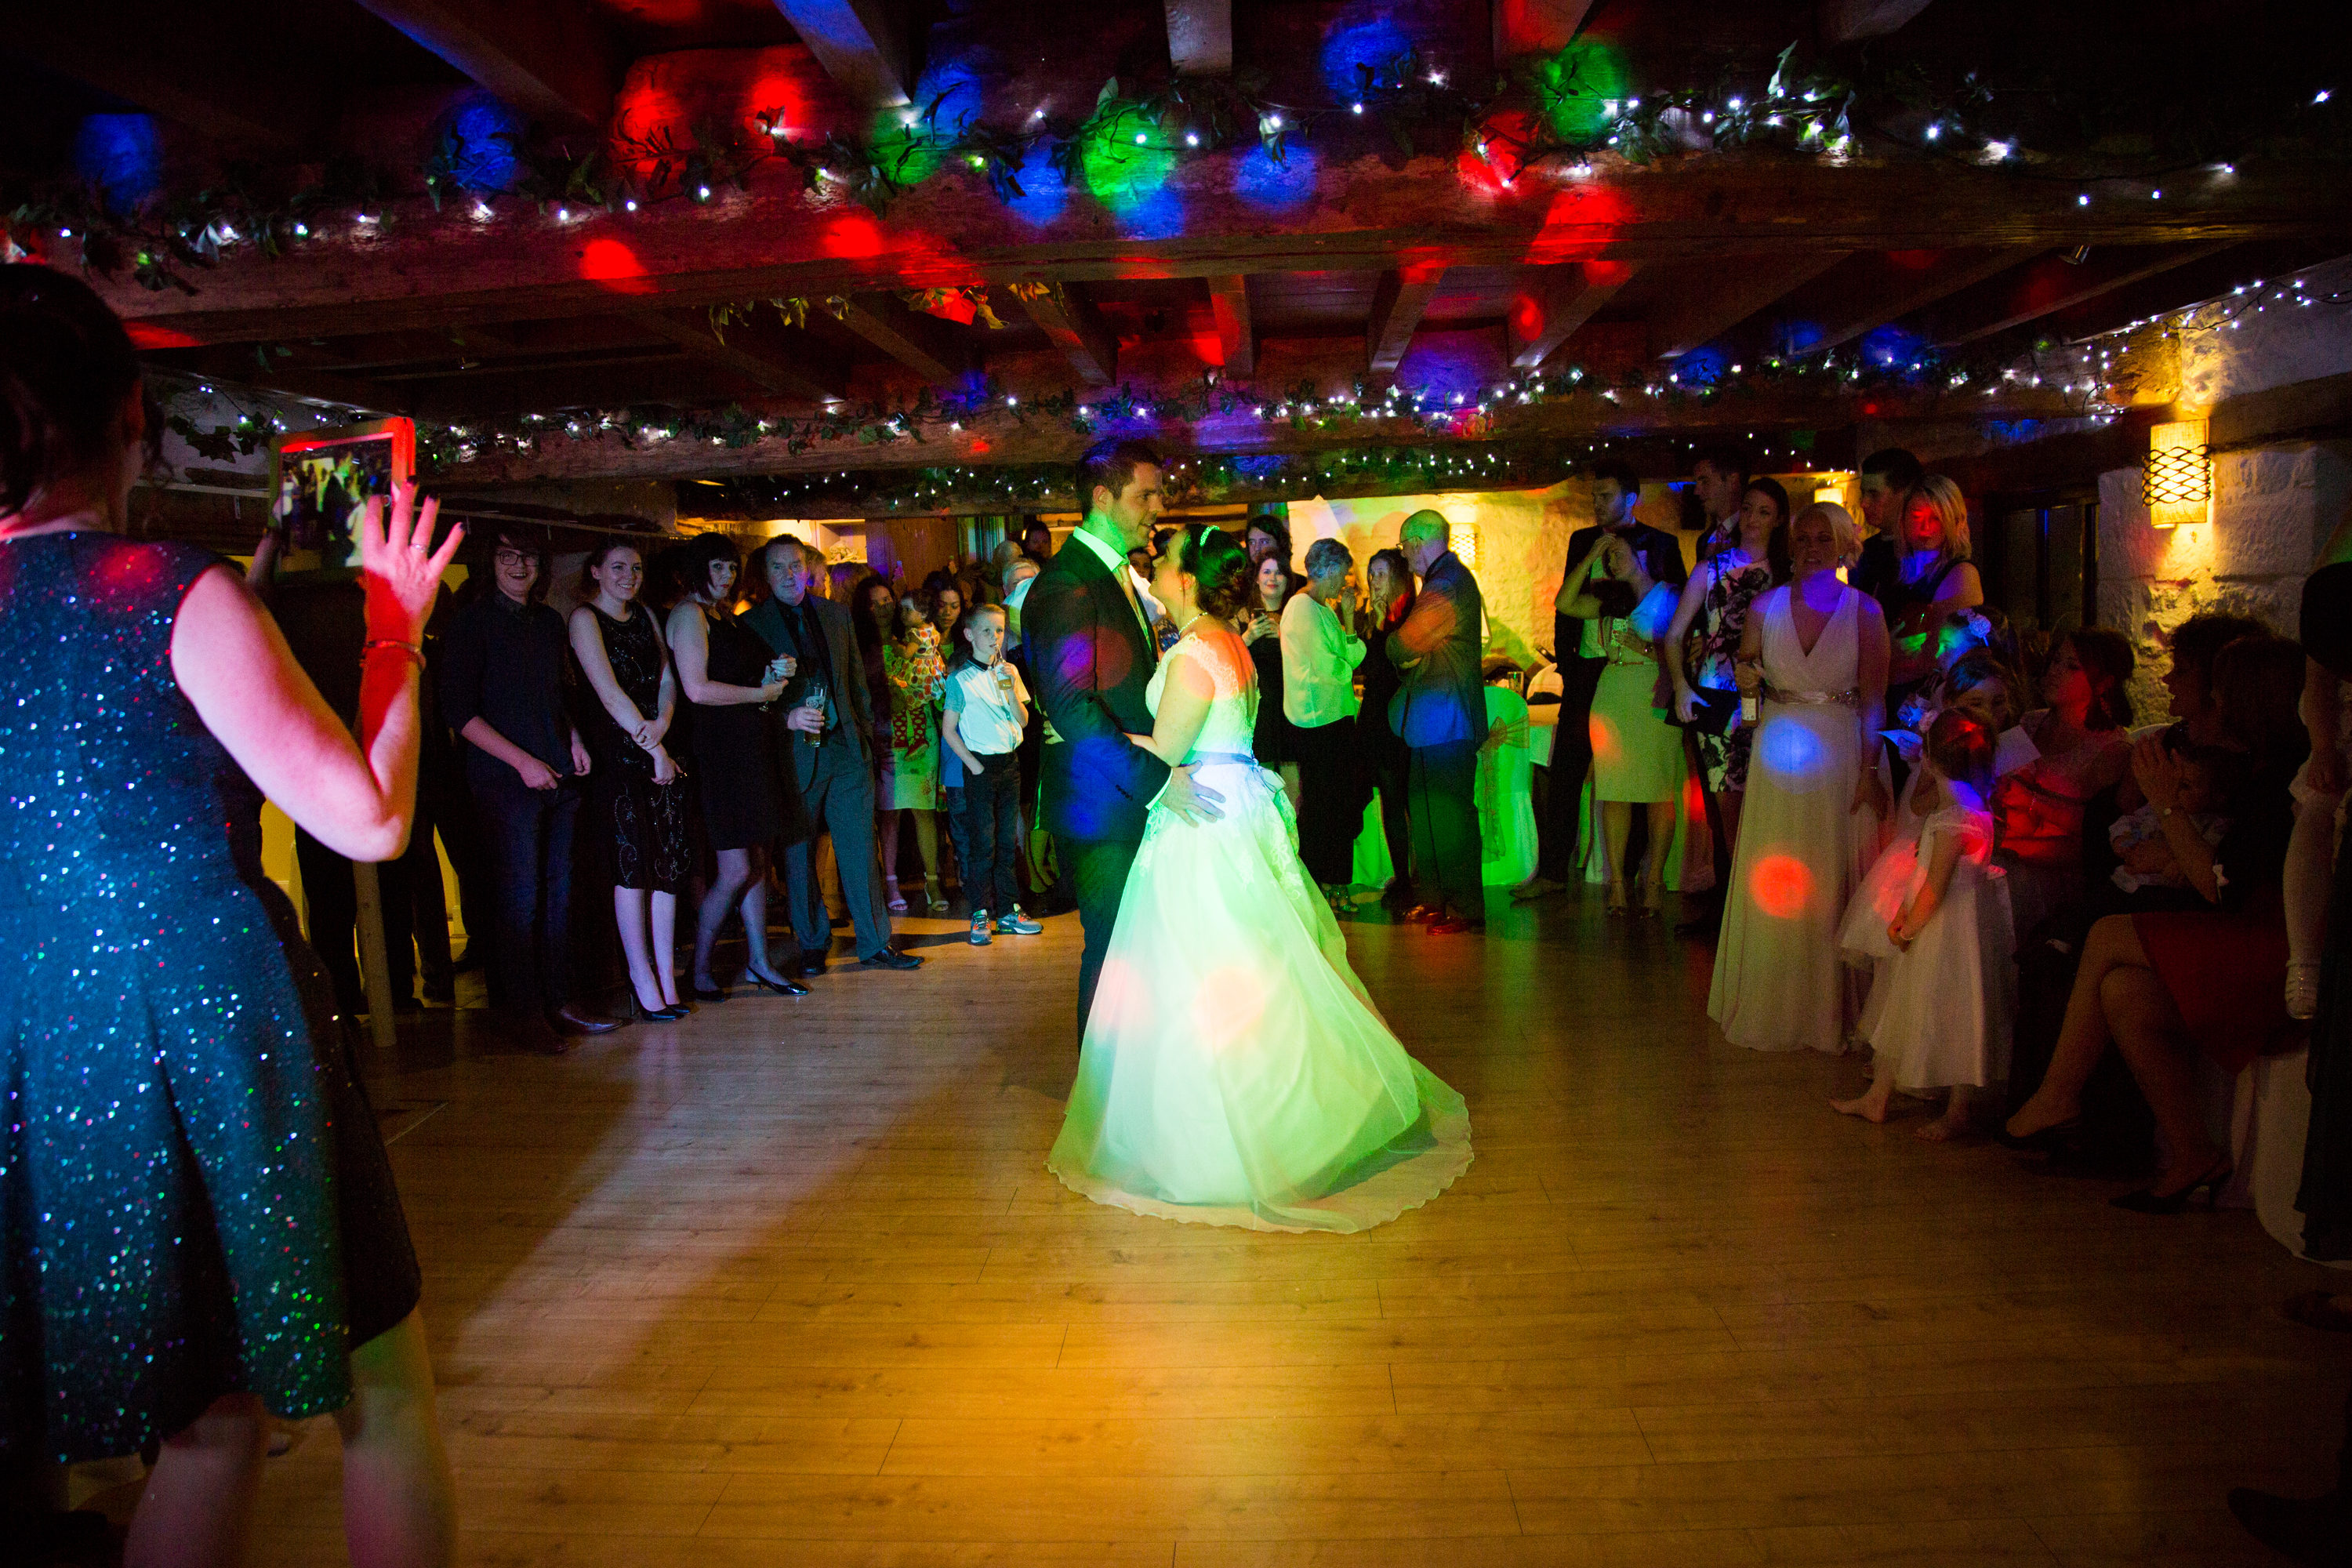 Bride and groom in the middle of the dance floor, dancing their first dance.